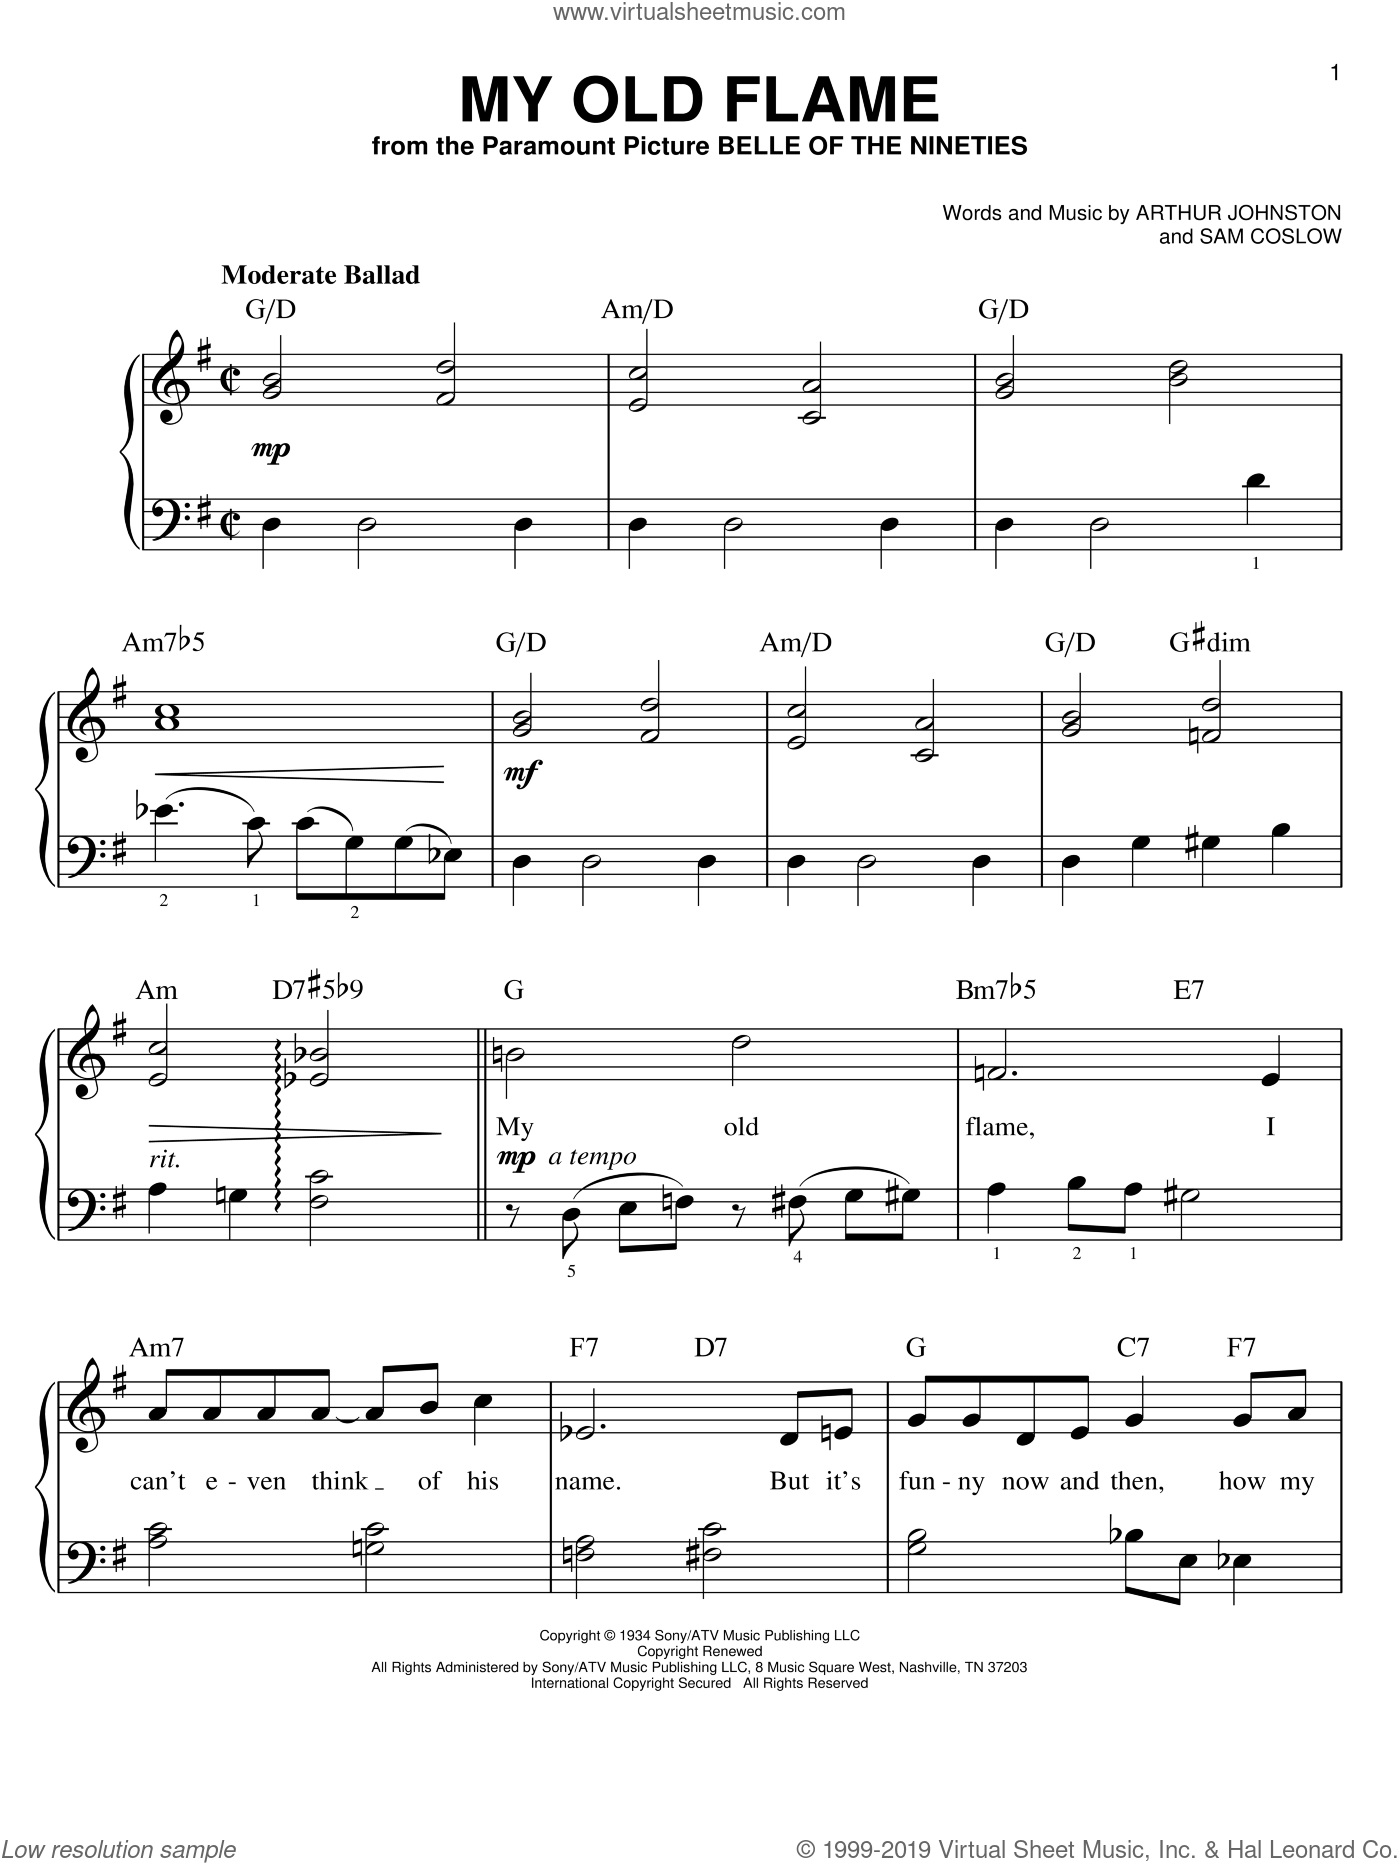 My Old Flame sheet music for piano solo (chords) by Sam Coslow